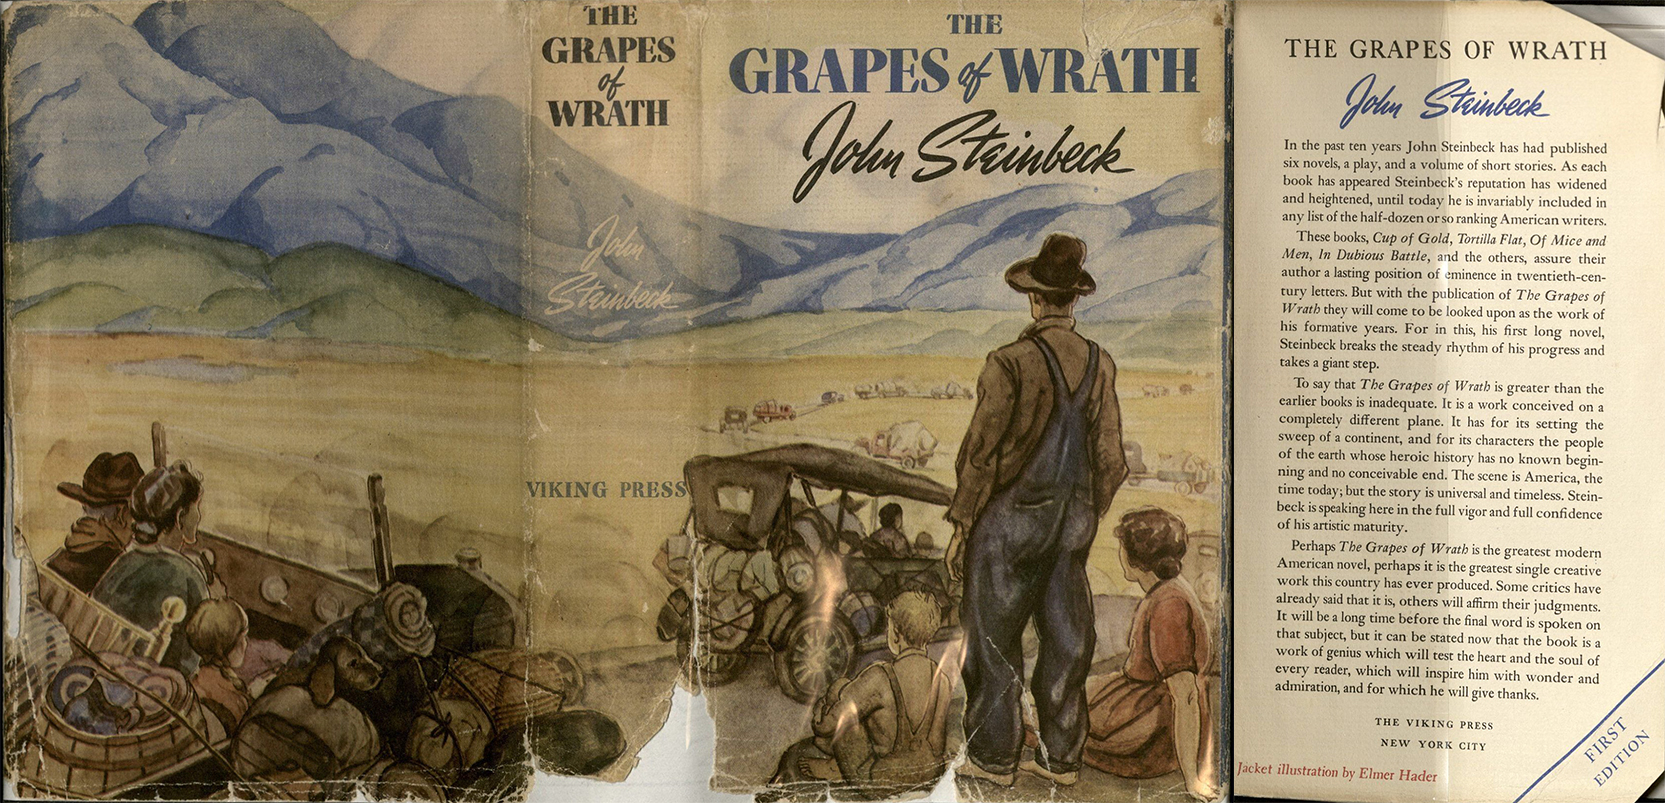 grapes of wrath supporting united states The grapes of wrath: sin word steinbeck critical analysis when john steinbeck wrote the grapes of wrath the united states was amidst the support terms.